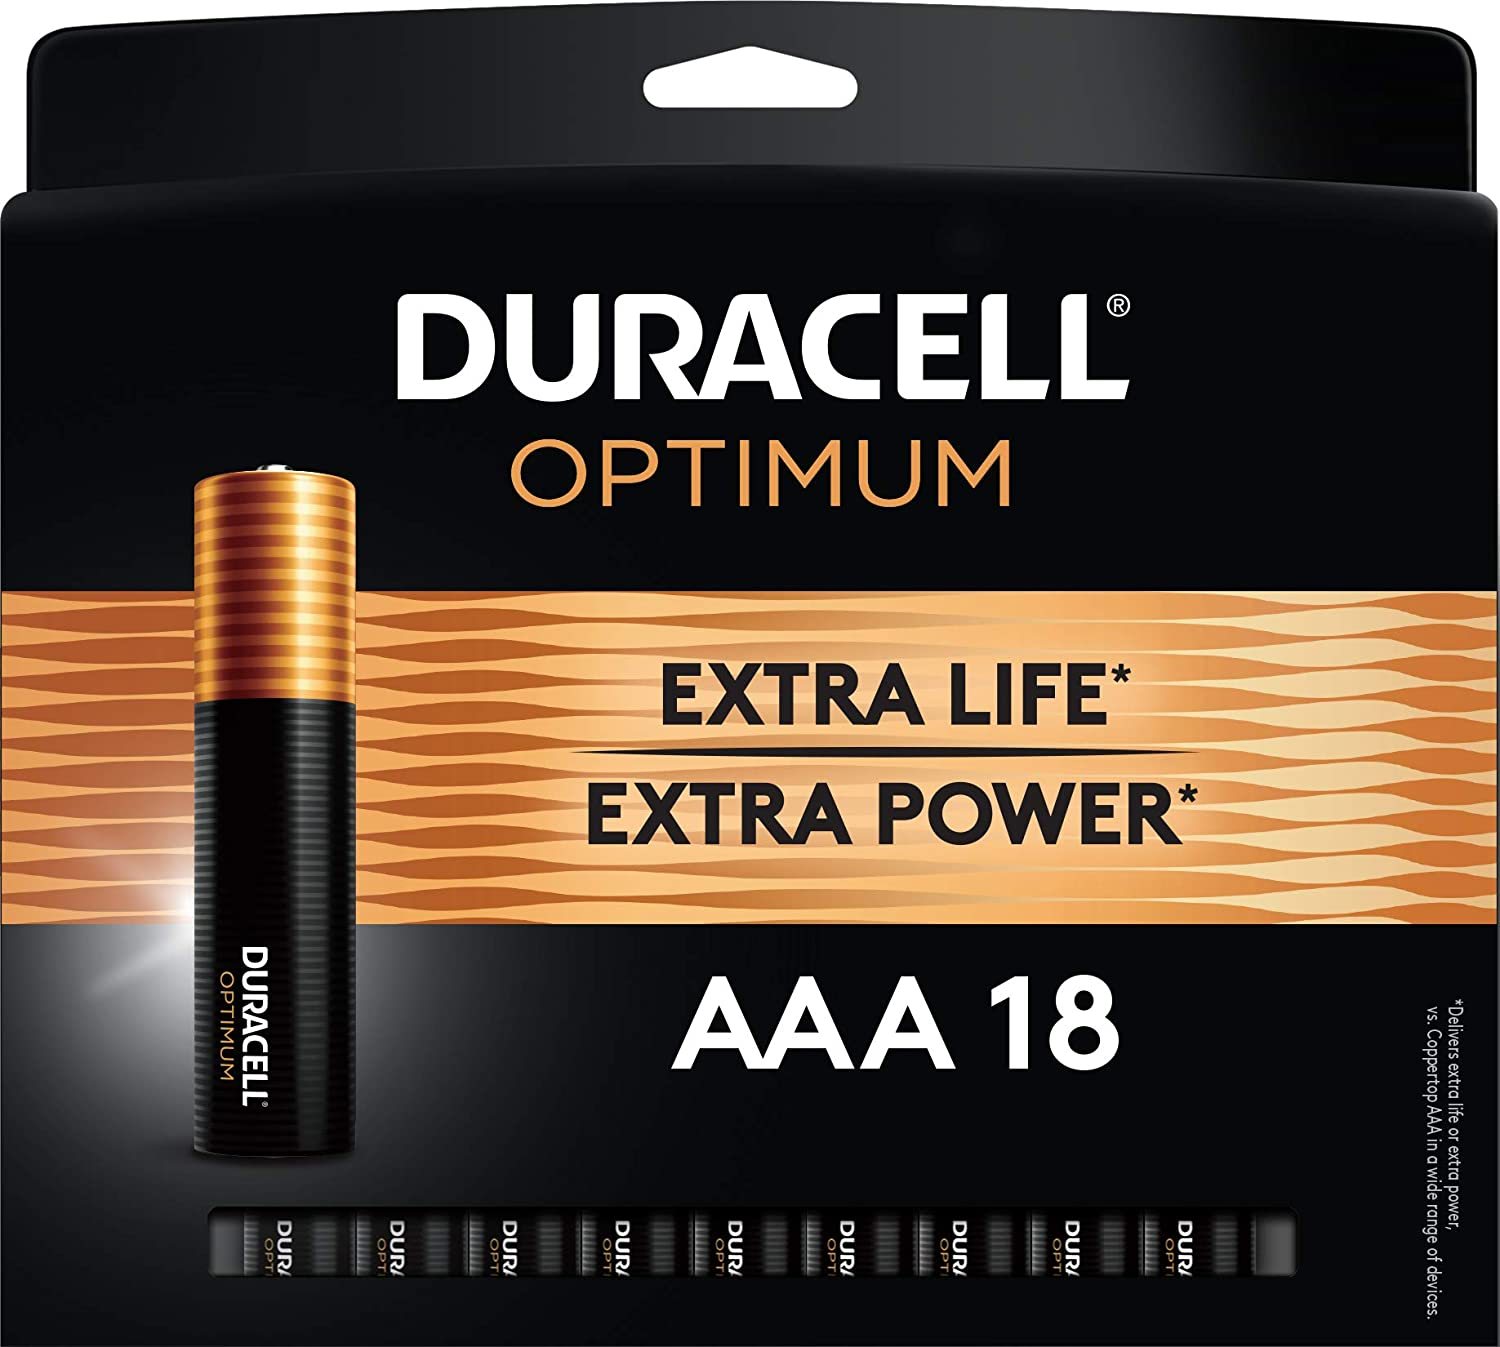 Duracell Optimum AAA Batteries   Lasting Power Triple A Battery   Alkaline AAA Battery Ideal for Household and Office Devices   Resealable Package for Storage, 18 Count (Pack of 1)